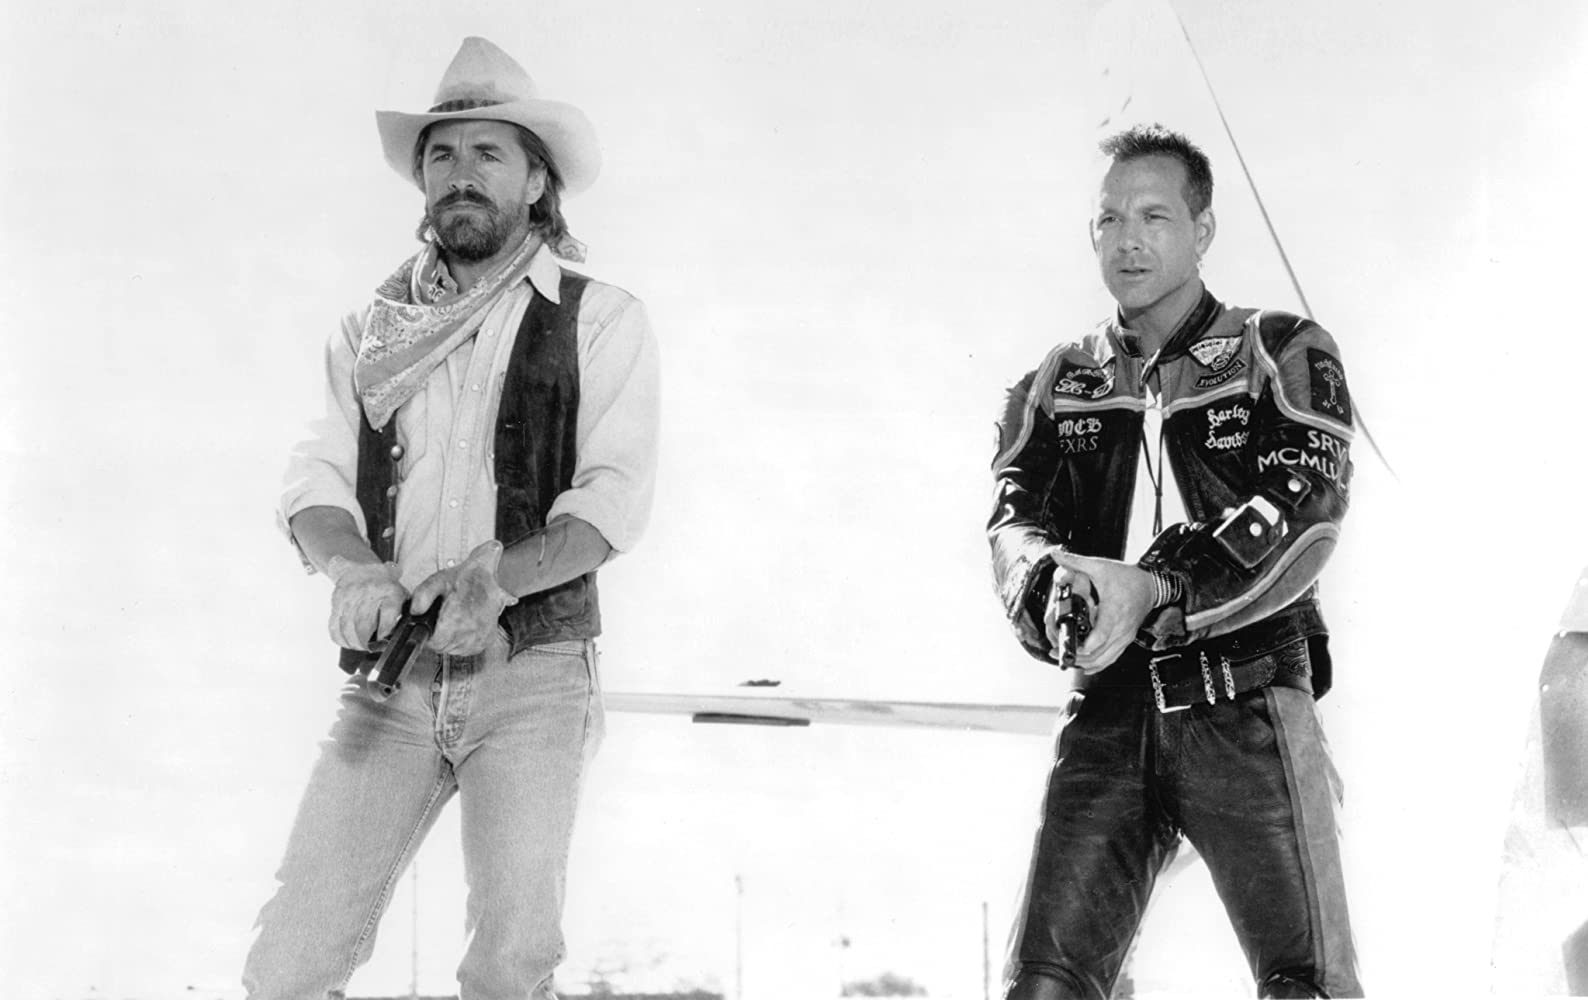 Harley Davidson and the Marlboro Man 1991